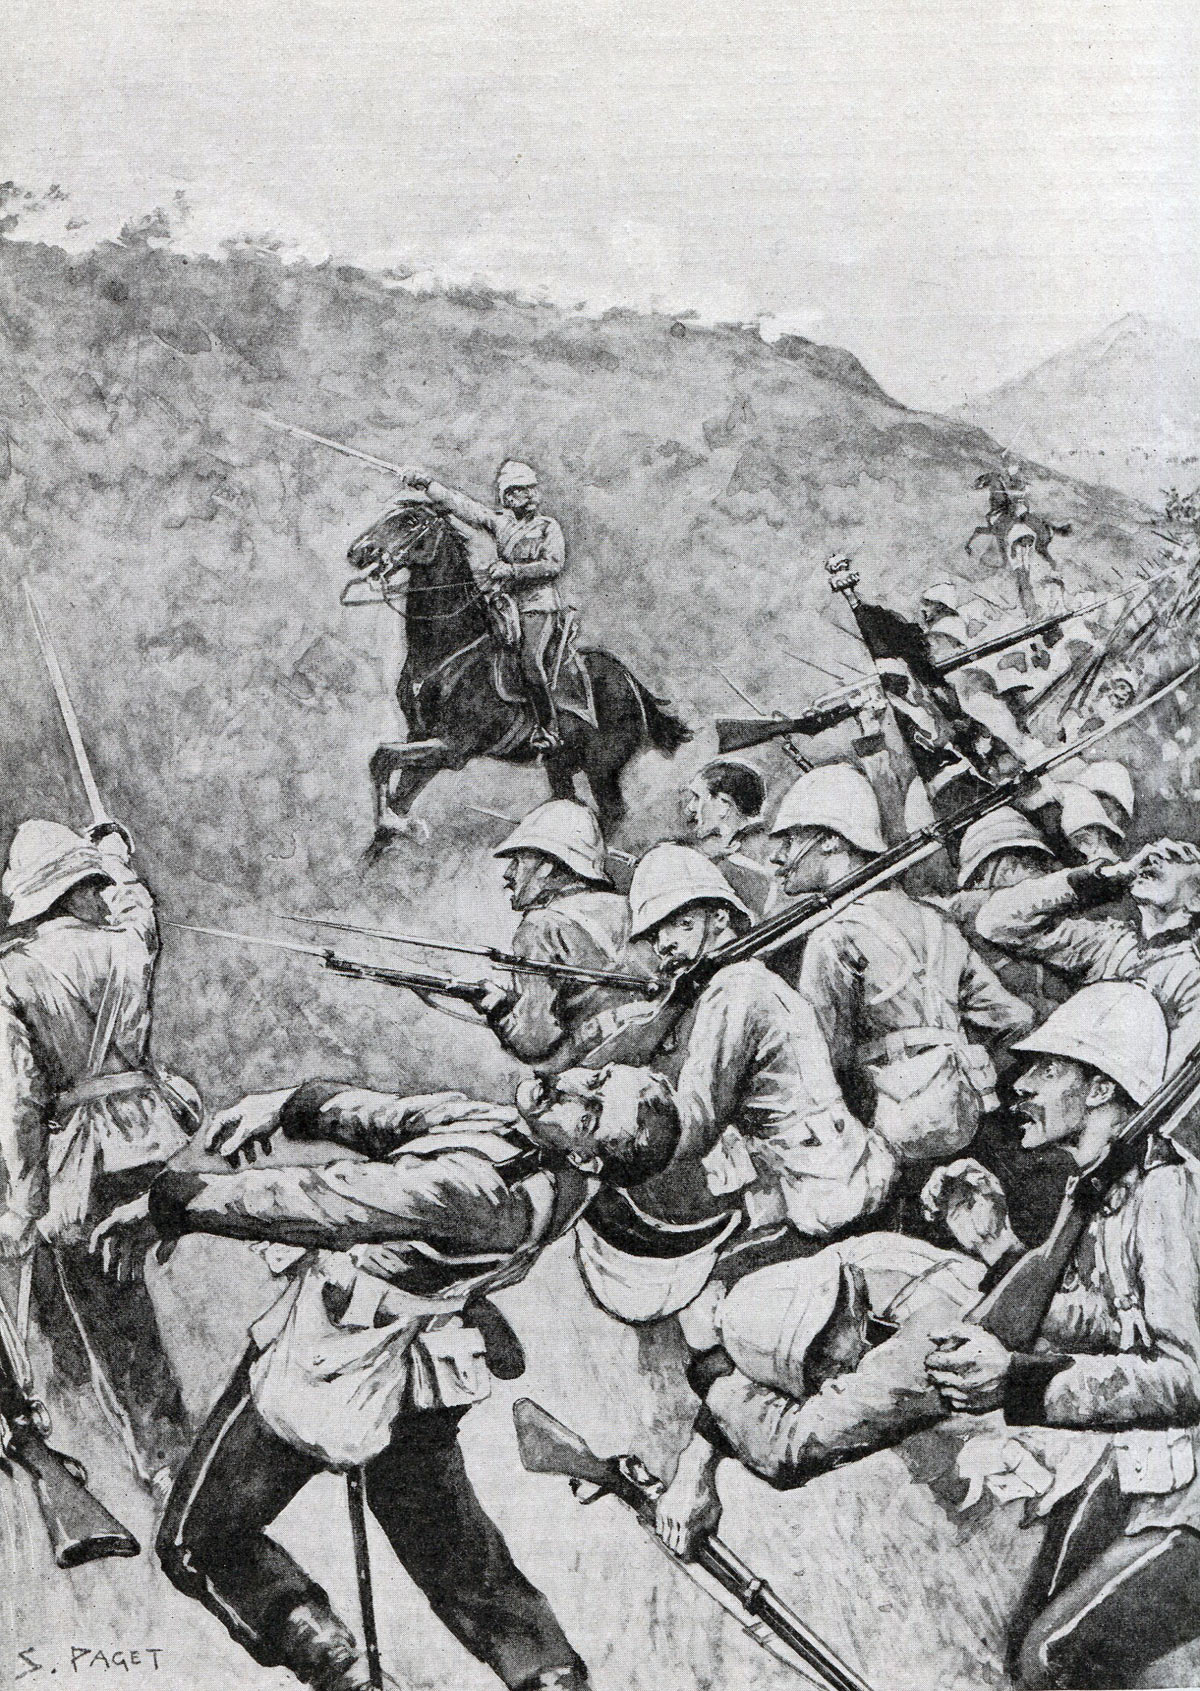 British 58th Regiment, with their Colours, storming the hillside at the Battle of Laing's Nek on 28th January 1881 in the First Boer War: picture by S. Paget